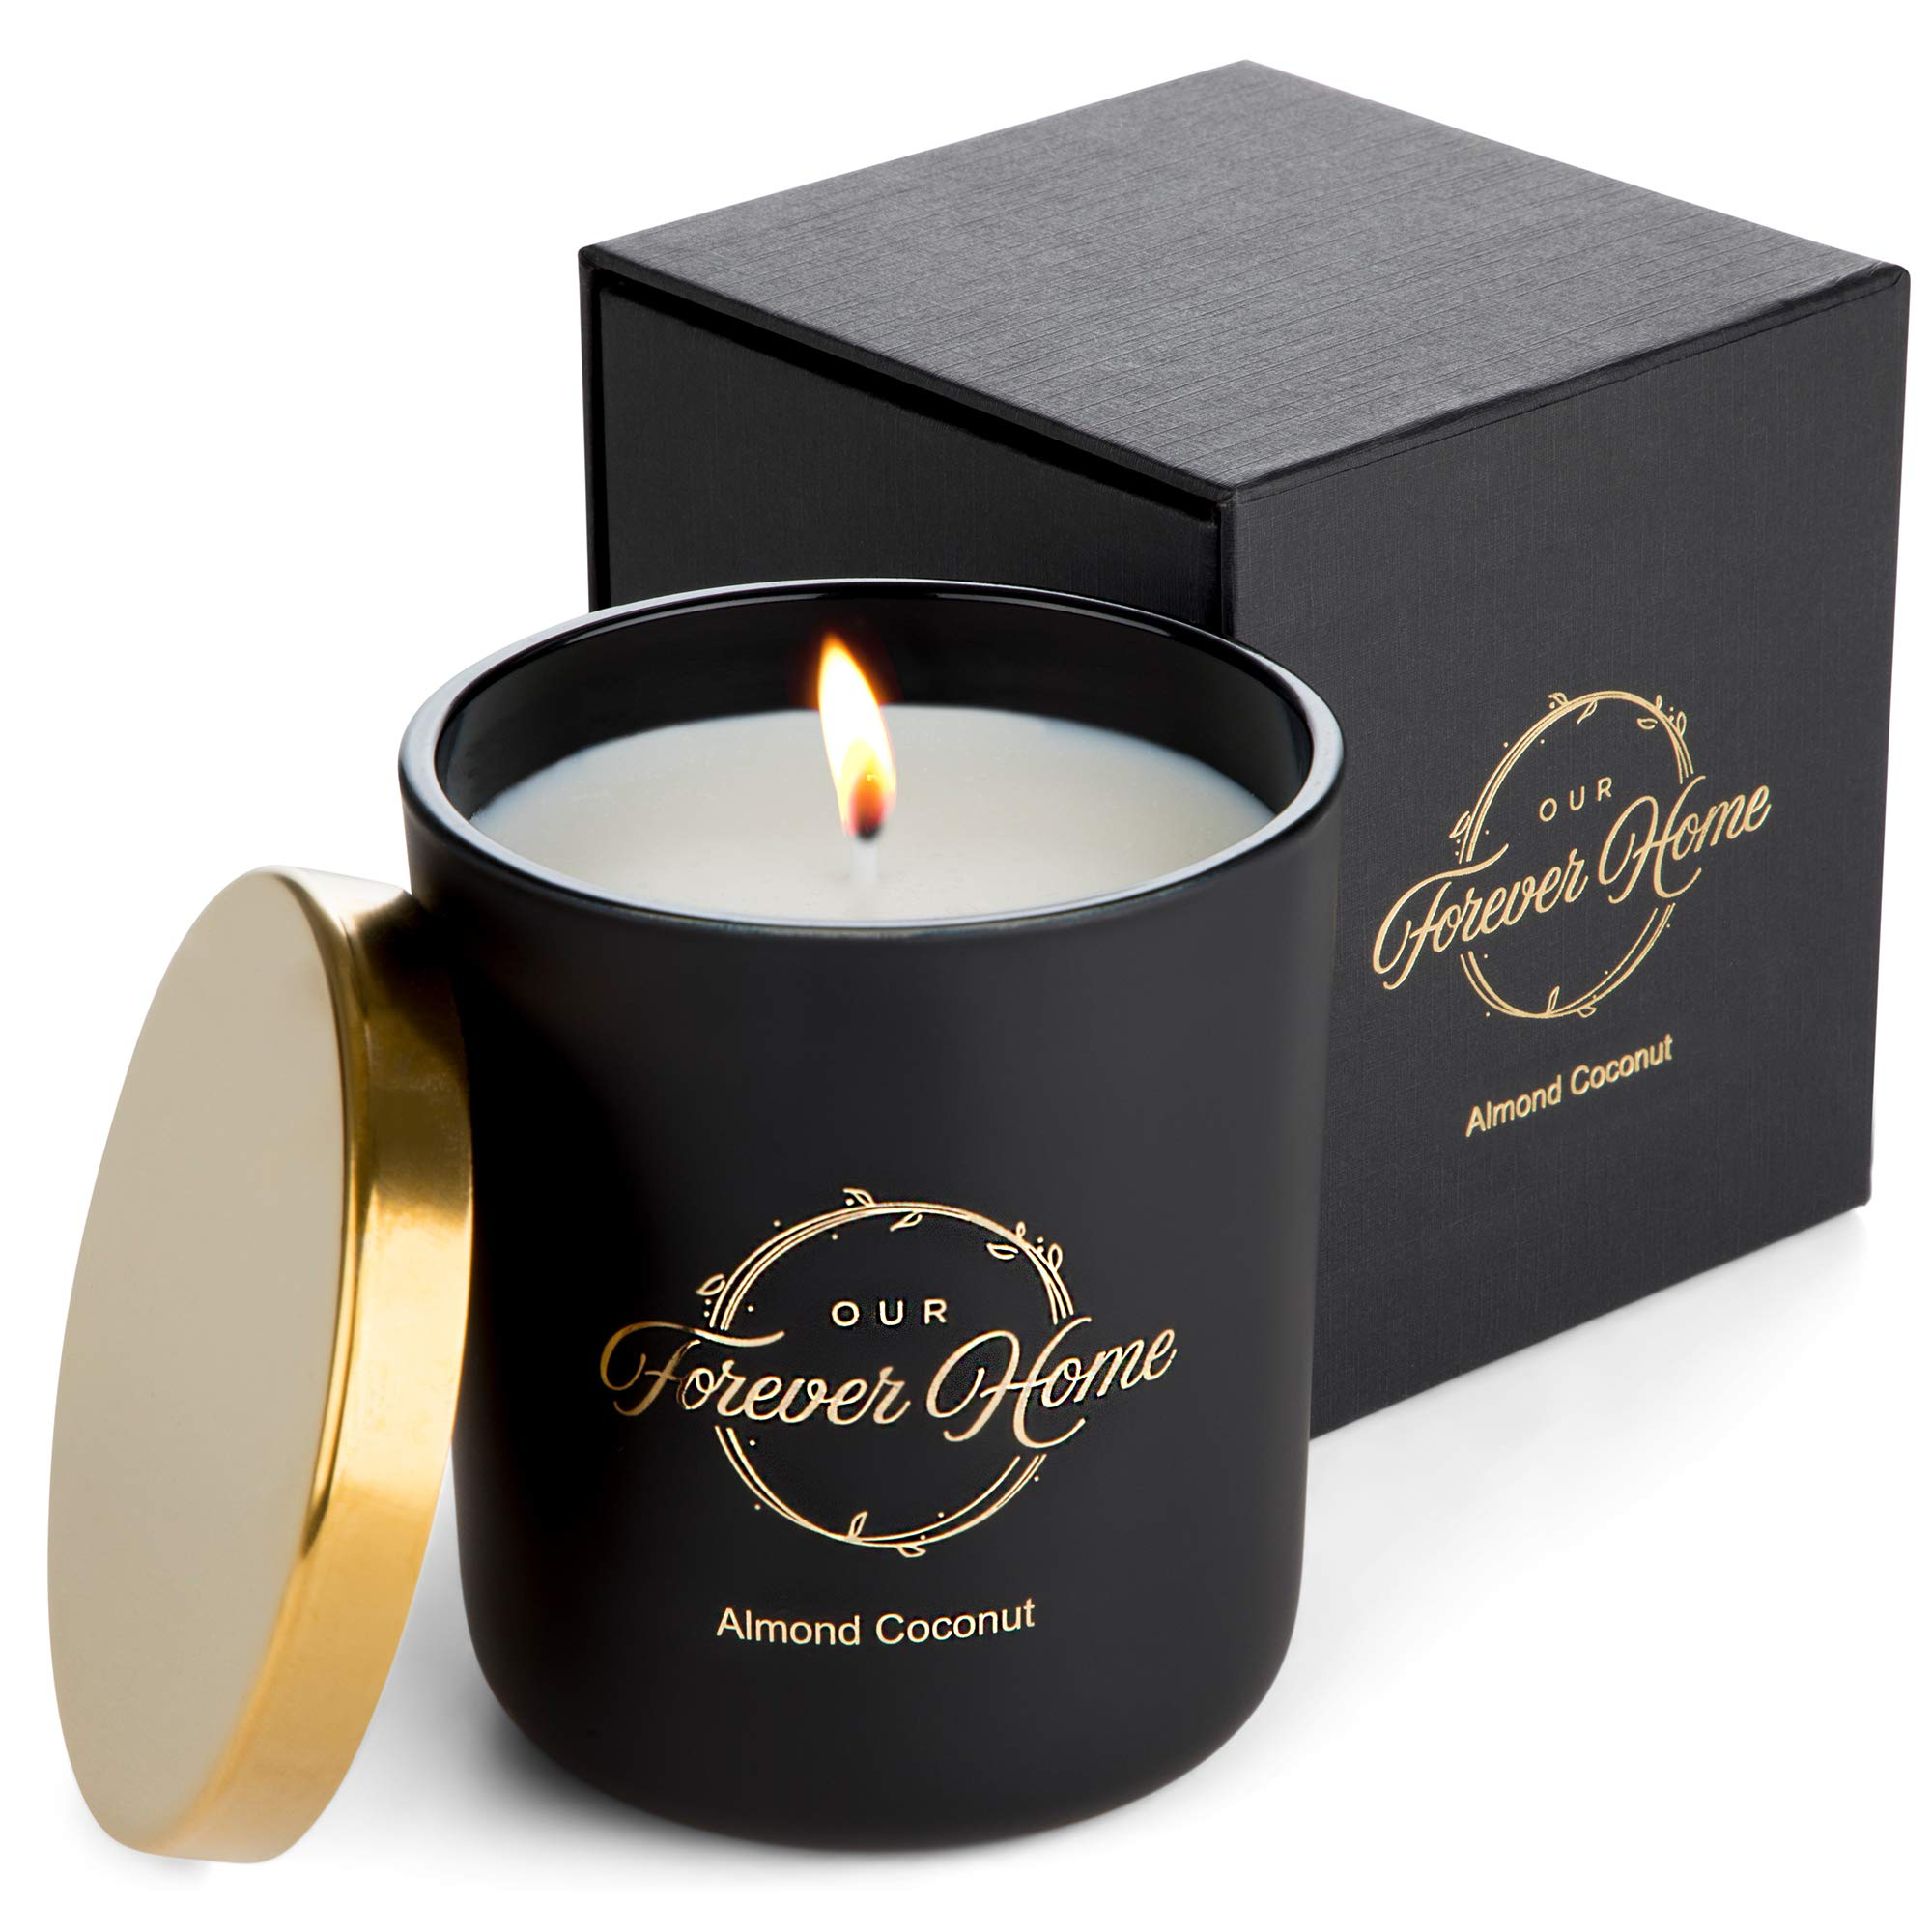 Our Forever Home Soy Jar Candle - 100% Natural Wax with Sweet Almond Coconut Fragrance, 10 oz - Luxury Scented Candles in Matte Black Glass Jar